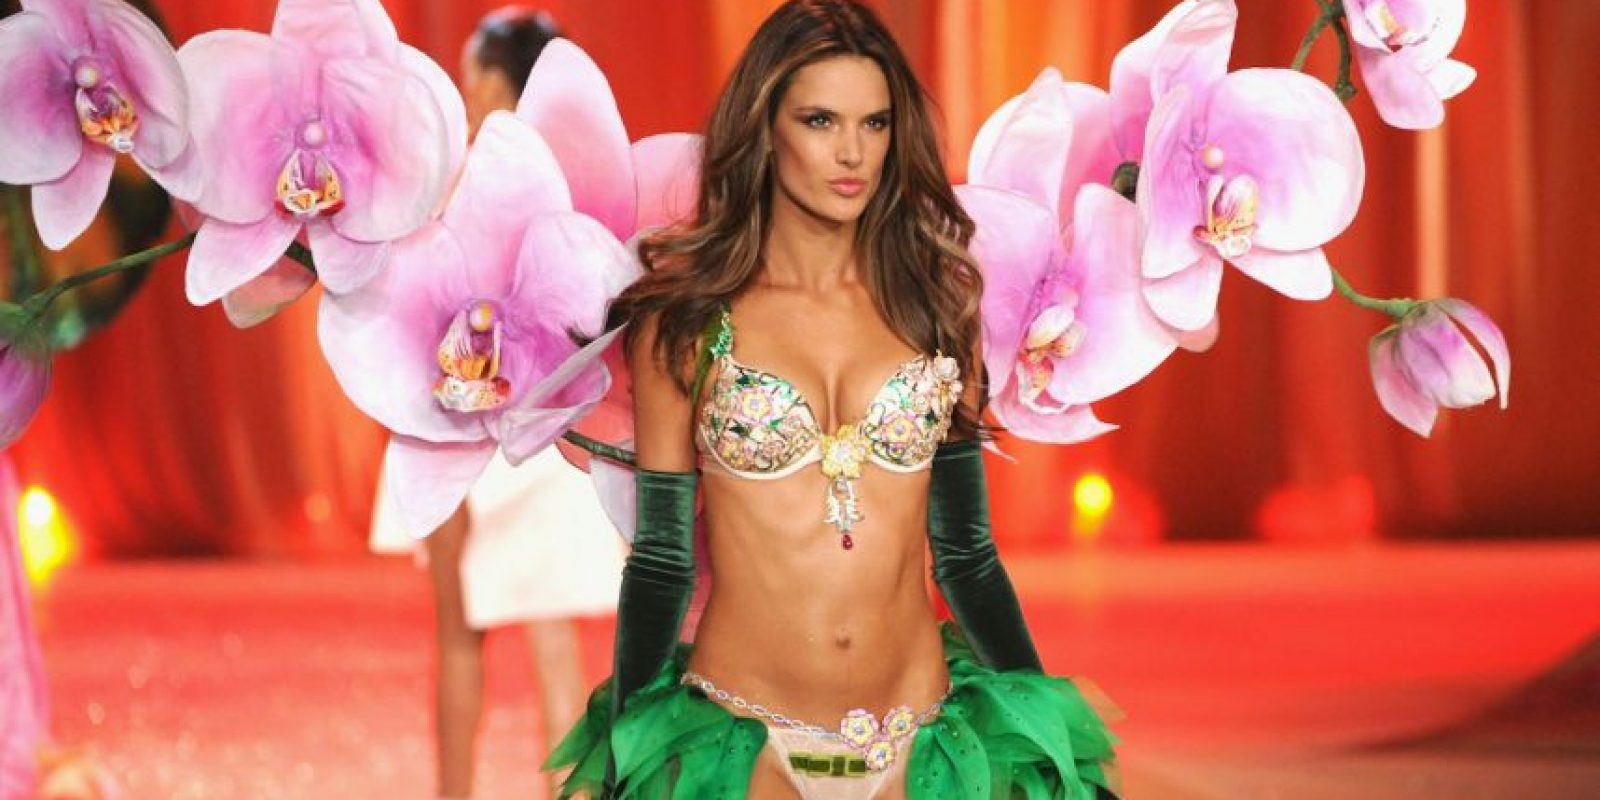 Alessandra Ambrosio Foto: Getty Images